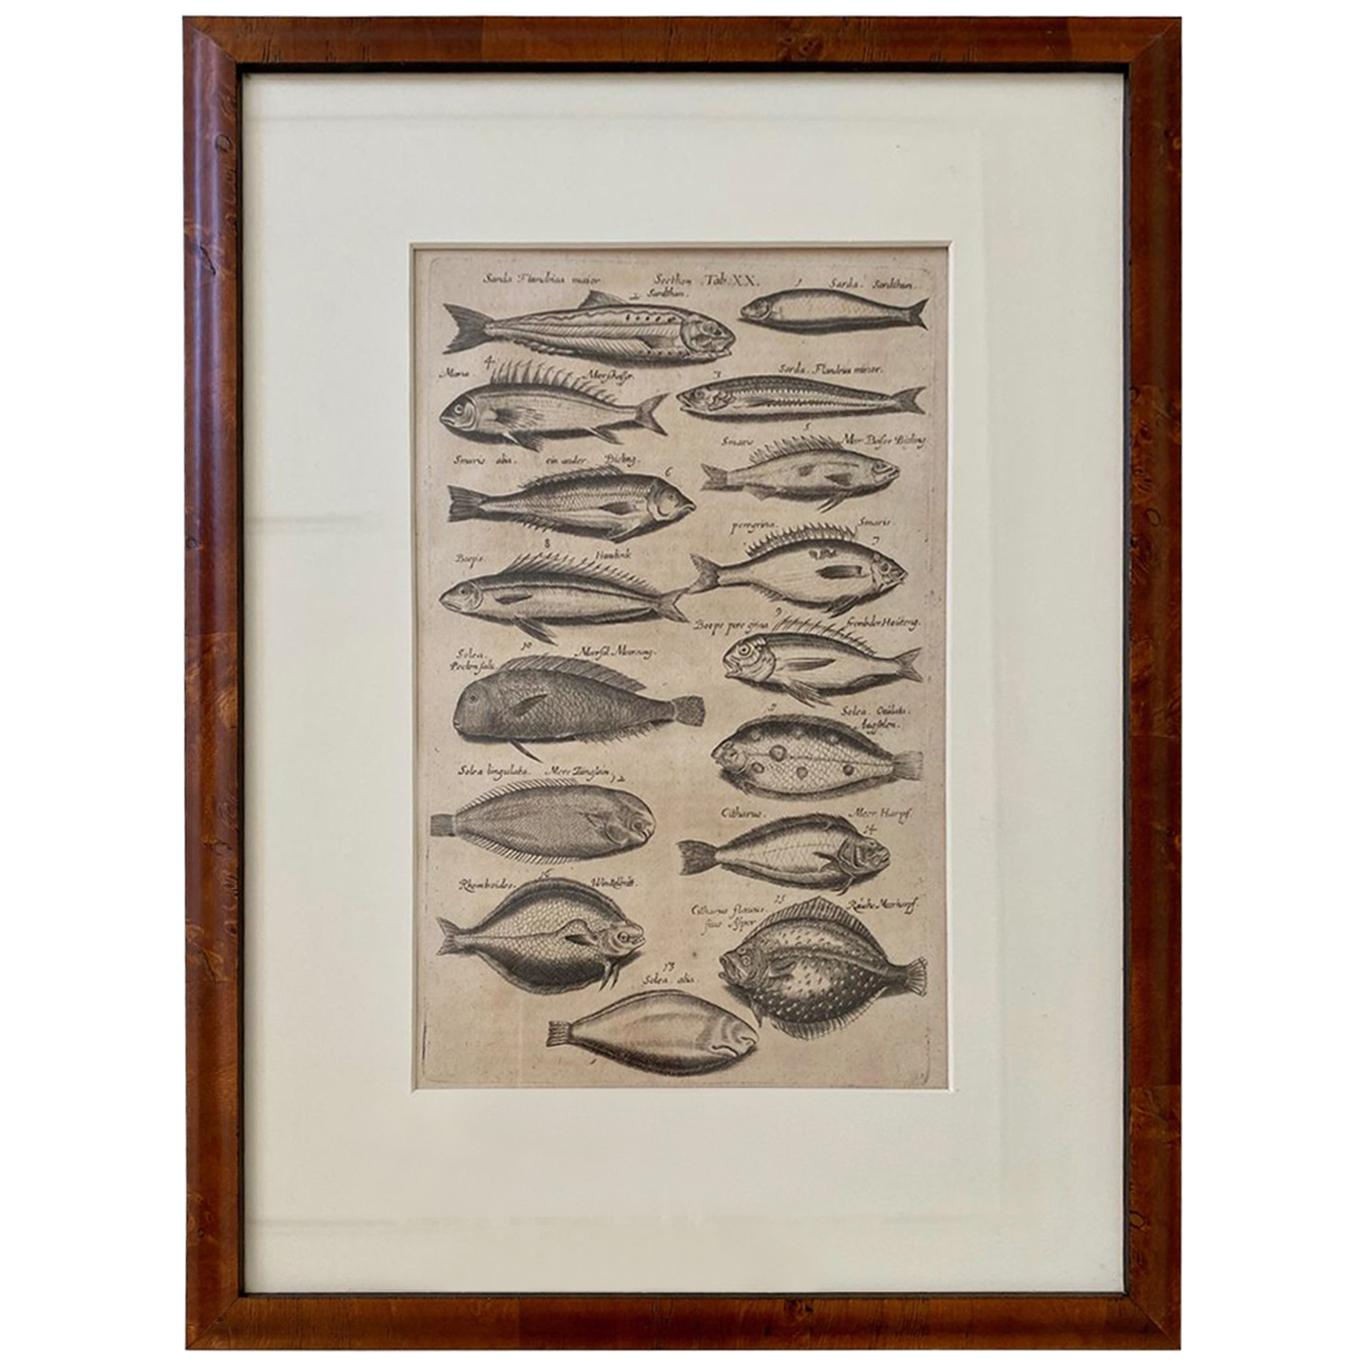 18th Century Woodcut Engraving of Fishes, by Maria Johnston Merian, Printed 1767